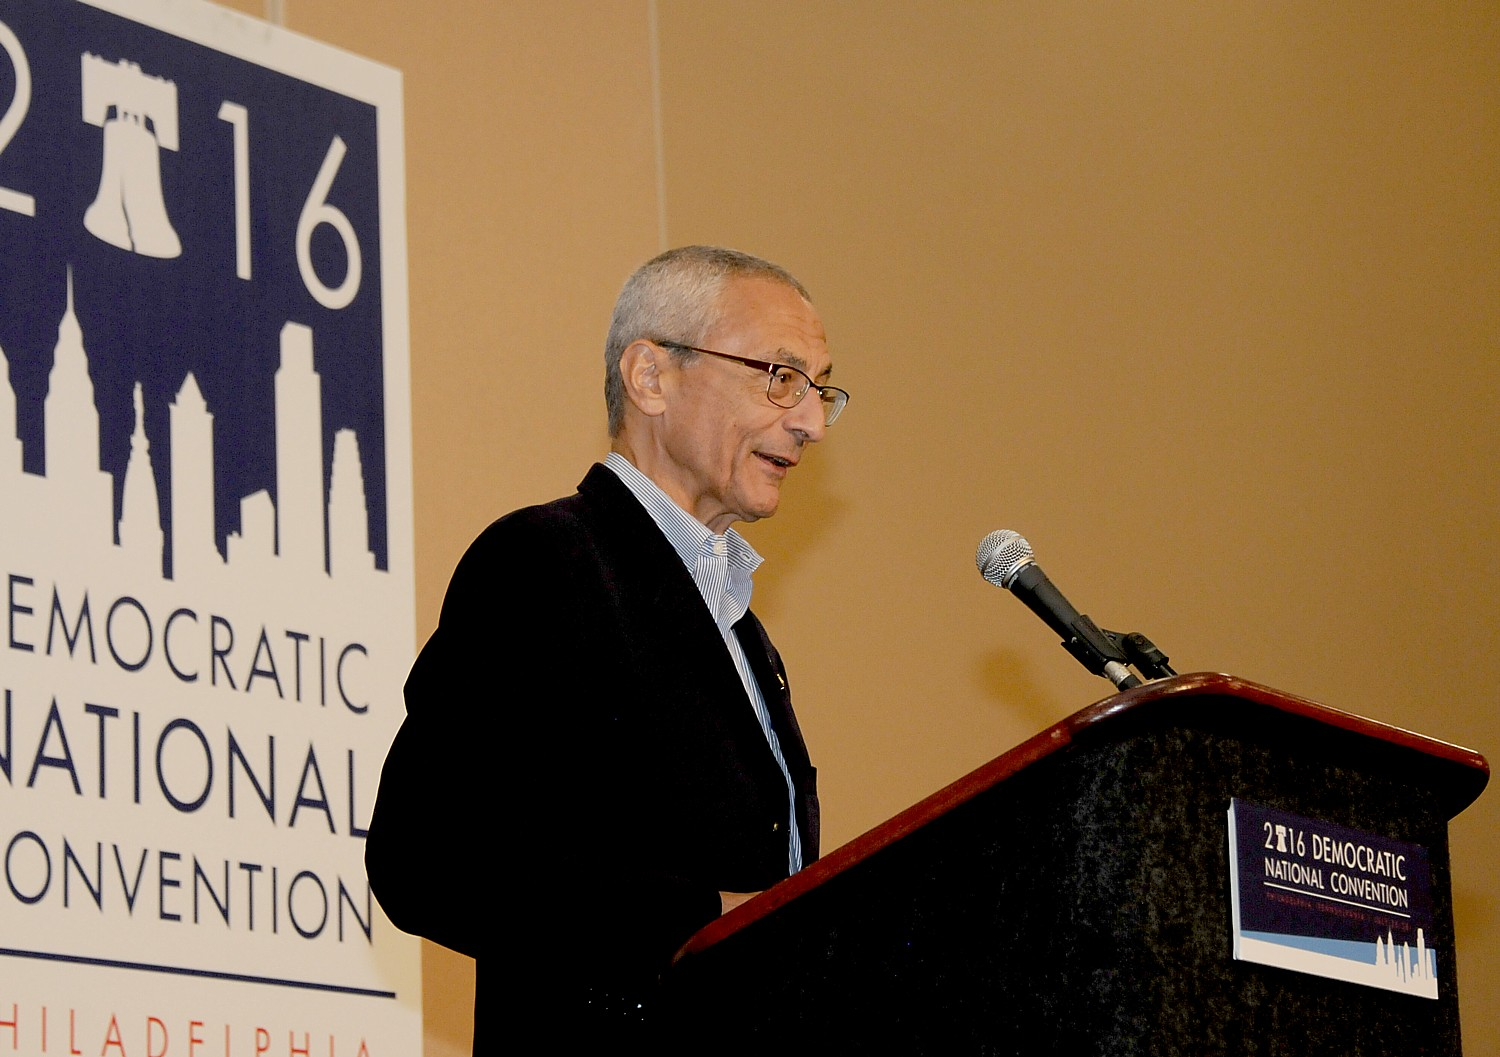 "Hillary for America Chair John Podesta: ""It is extraordinary that we would see something like this just 11 days out from a presidential election. The Director owes it to the American people to immediately provide the full details of what he is now examining. We are confident this will not produce any conclusions different from the one the FBI reached in July."" © 2016 Karen Rubin/news-photos-features.com"